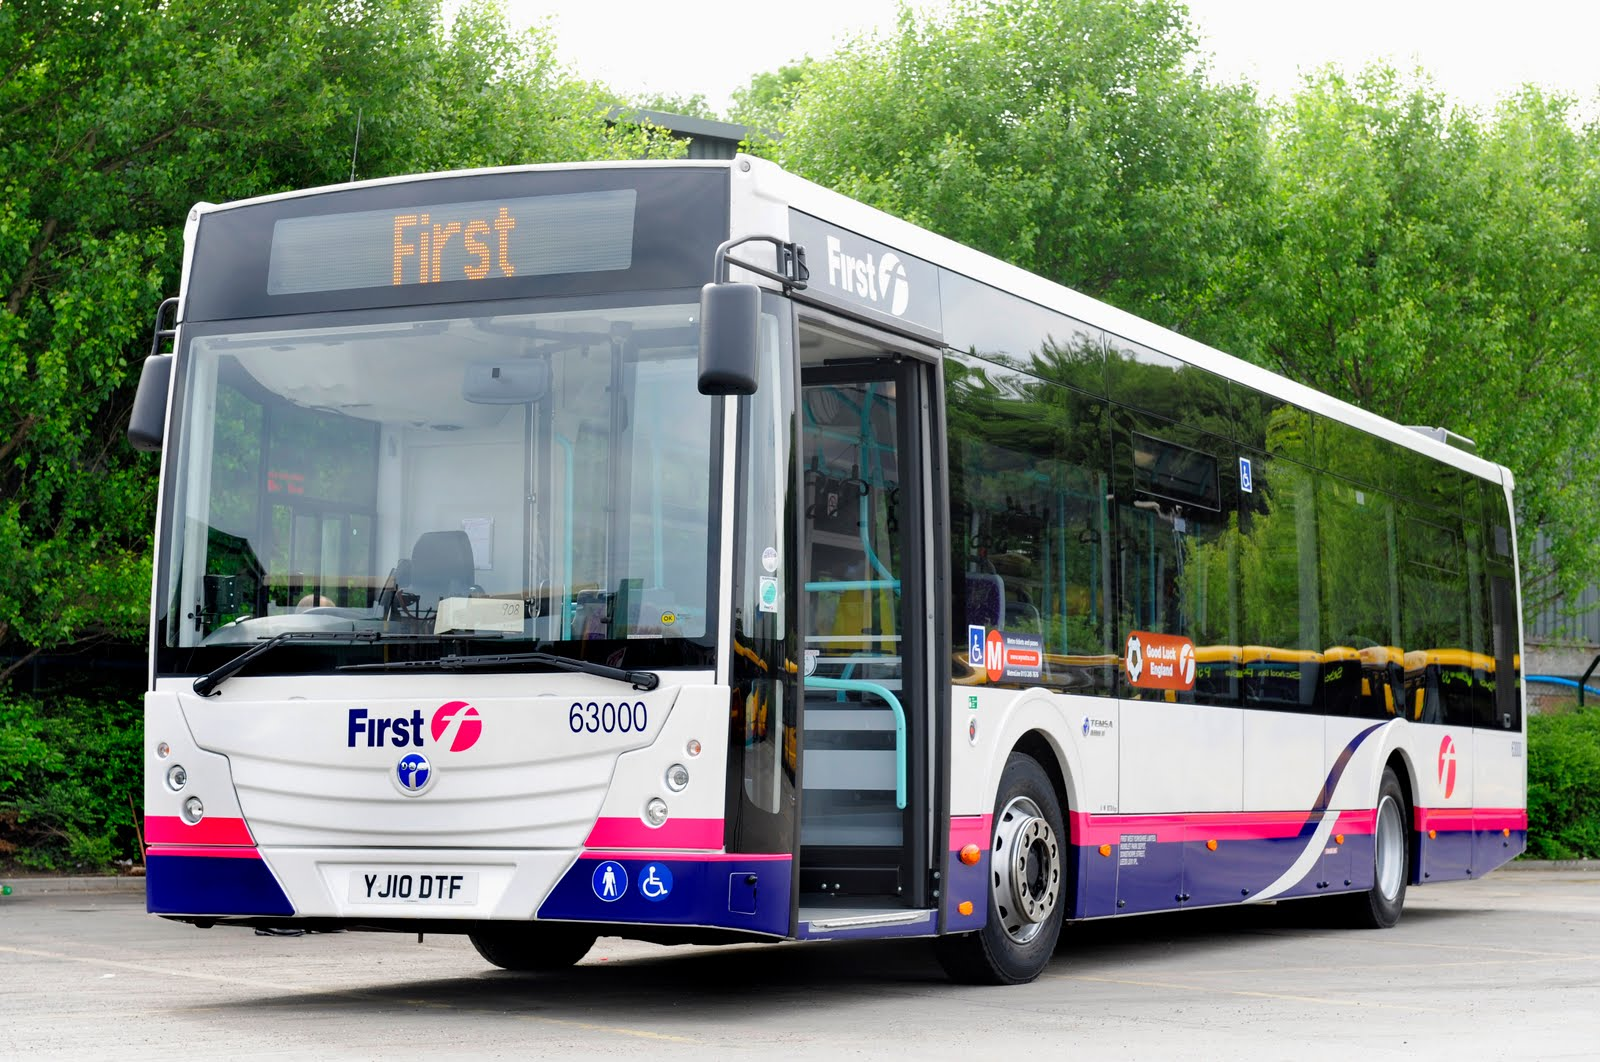 First Kernow bus service